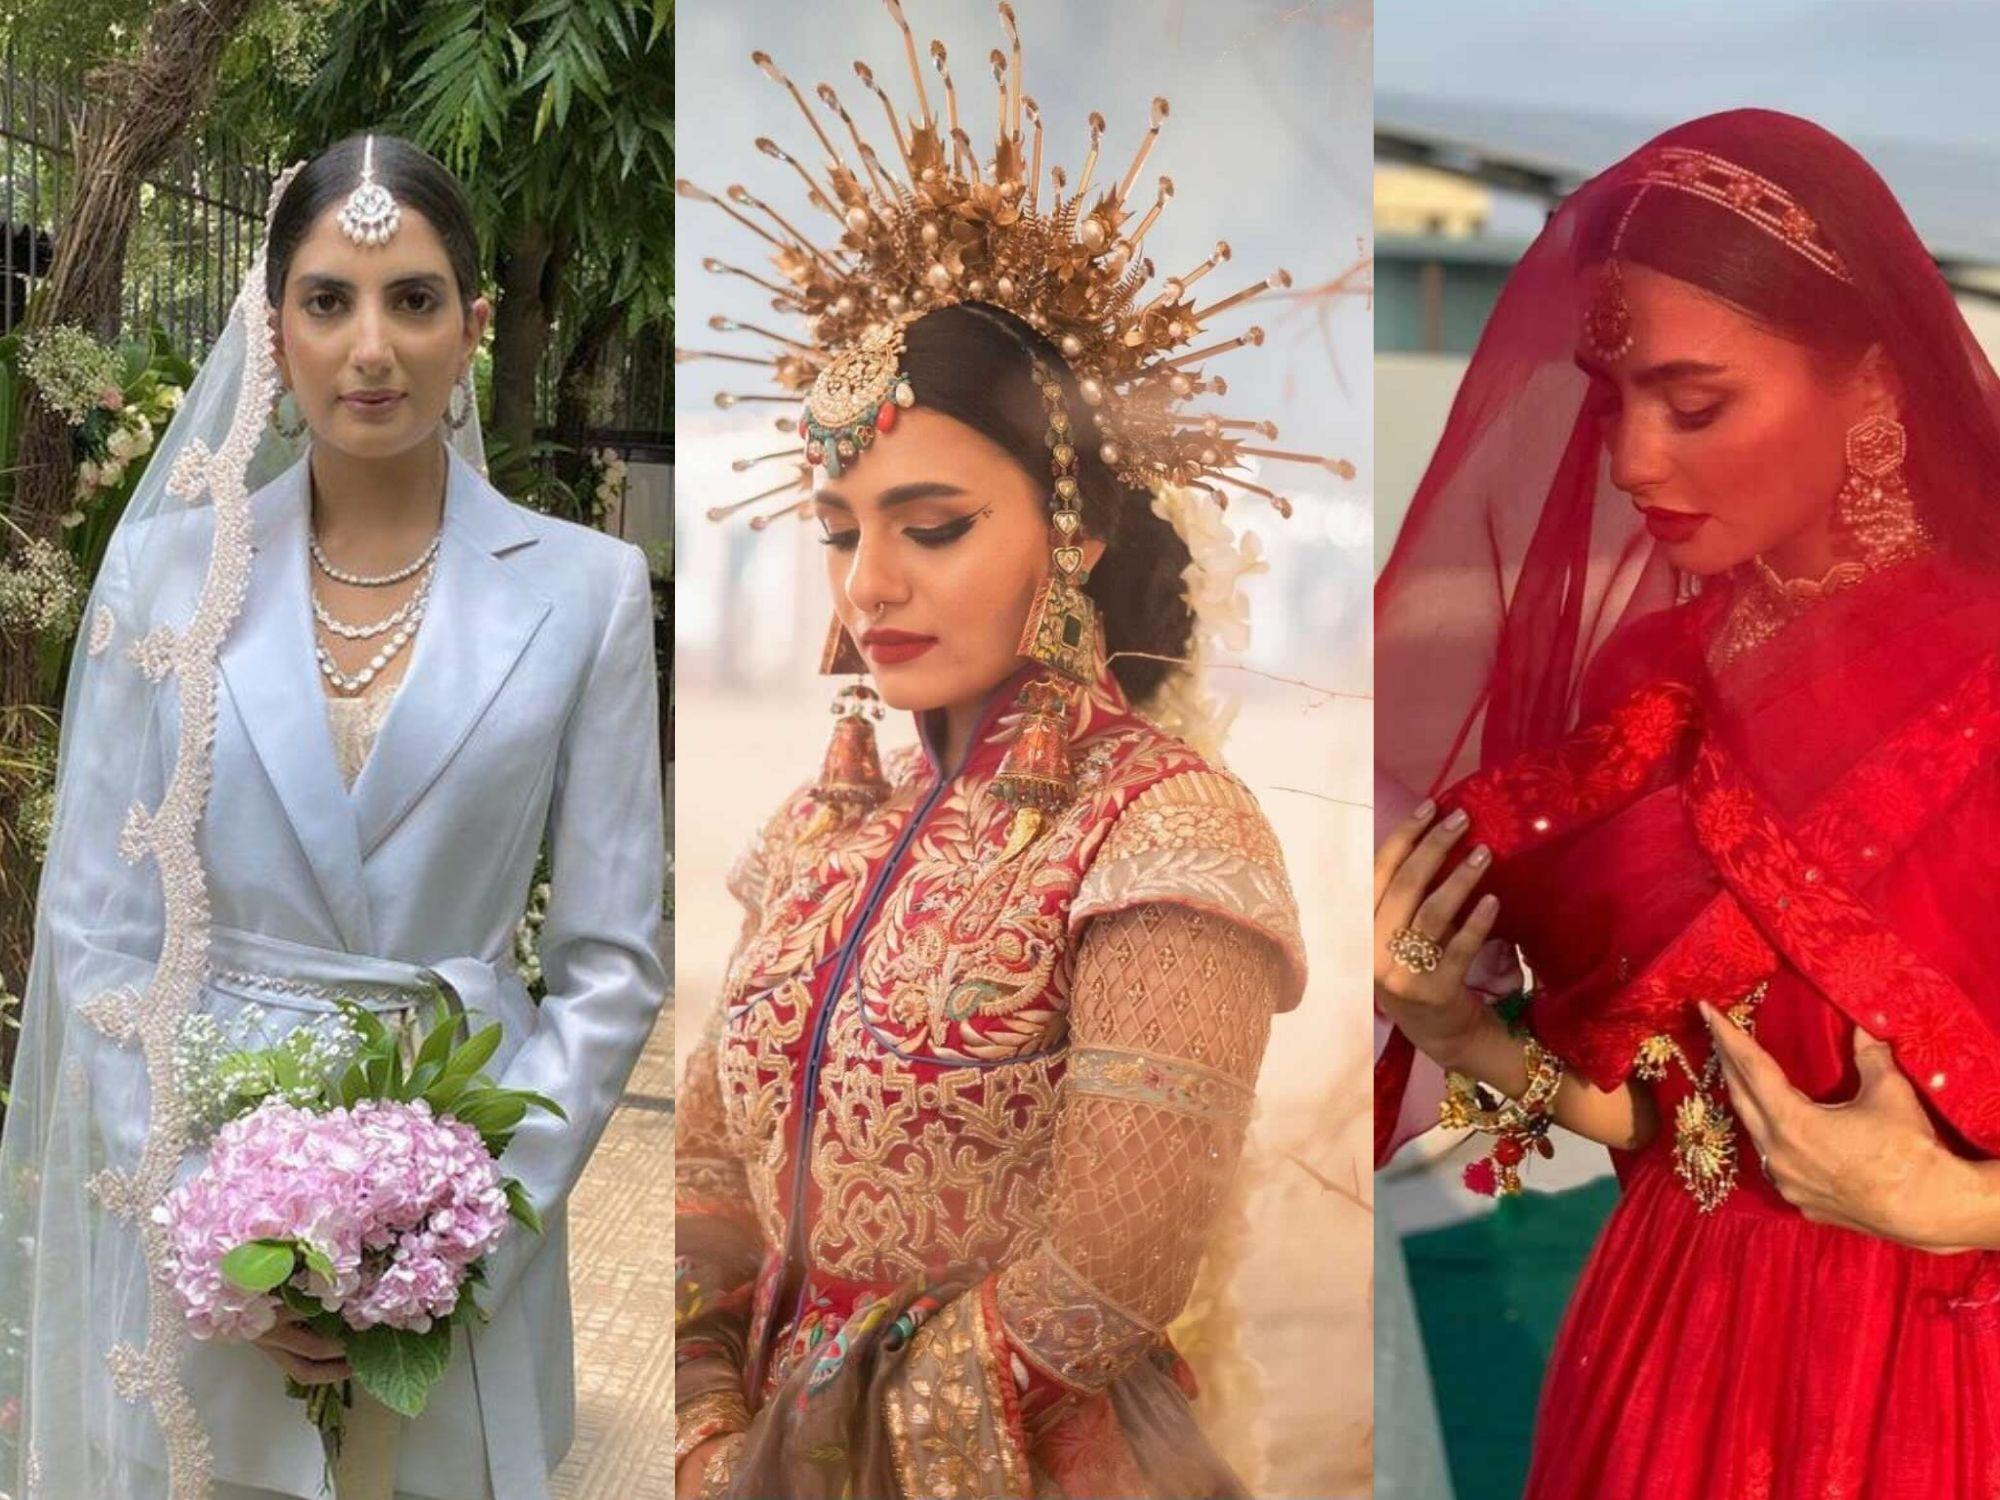 Unconventional brides of Instagram